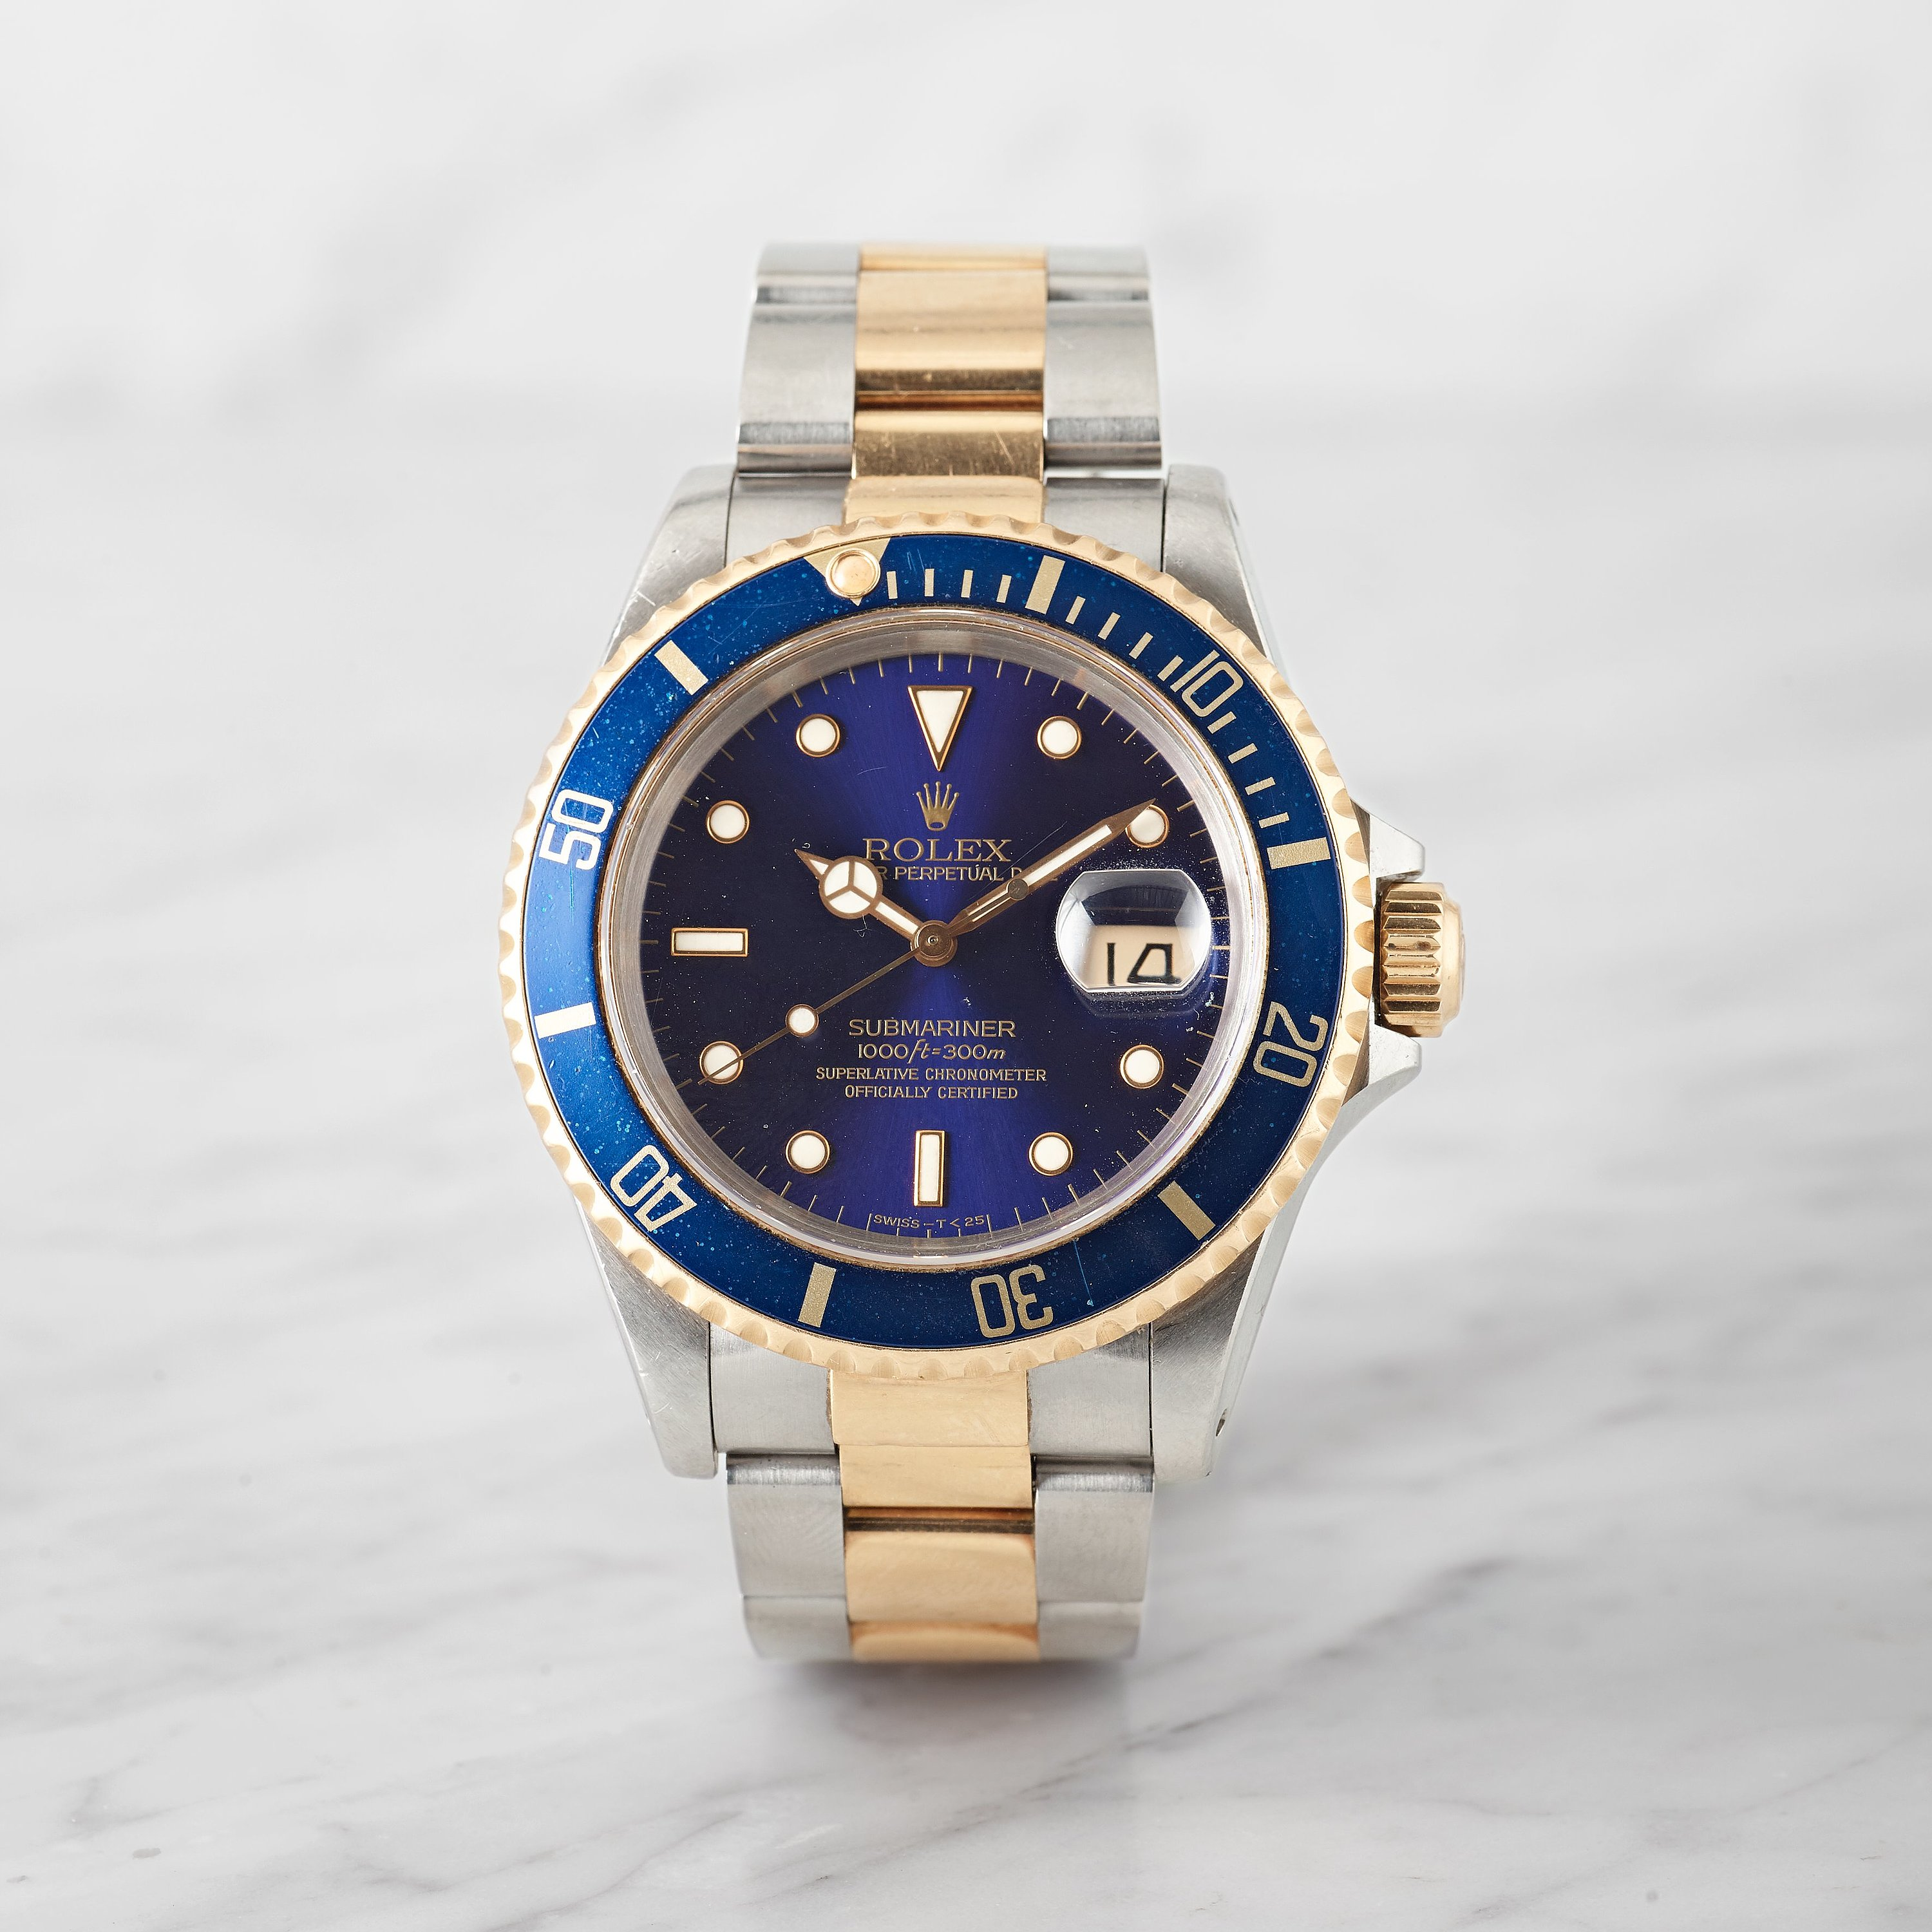 rolex oyster perpetual date submariner 1000ft 300m swiss t. Black Bedroom Furniture Sets. Home Design Ideas